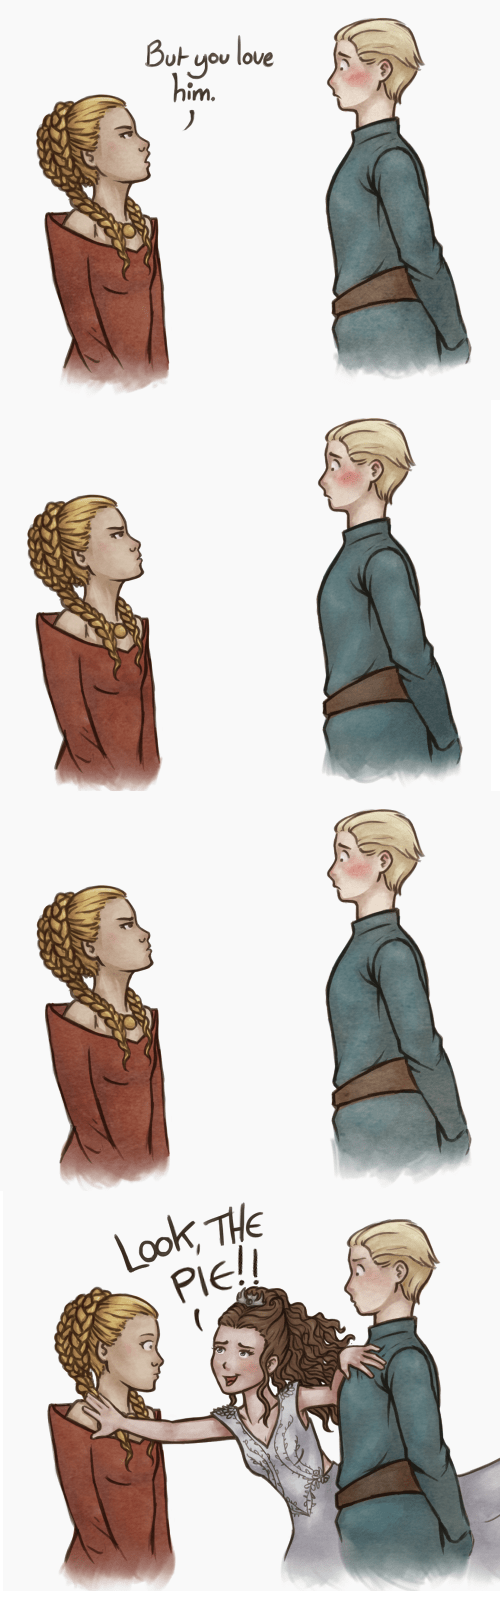 Fan Art Game of Thrones season 4 web comics purple wedding margaery tyrell - 8160152064